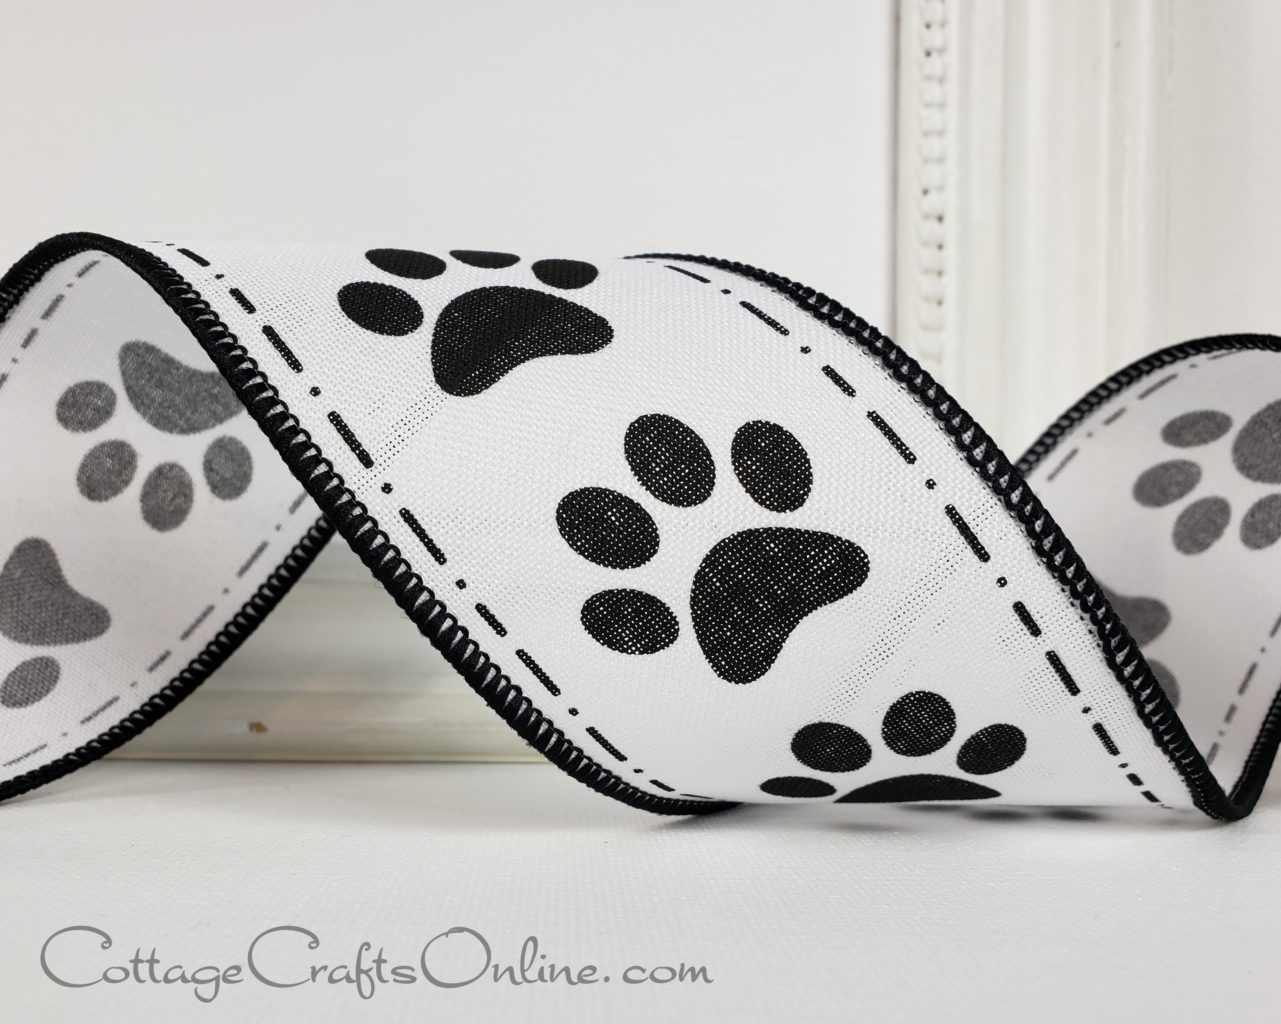 A black and white ribbon with pawprint patterns